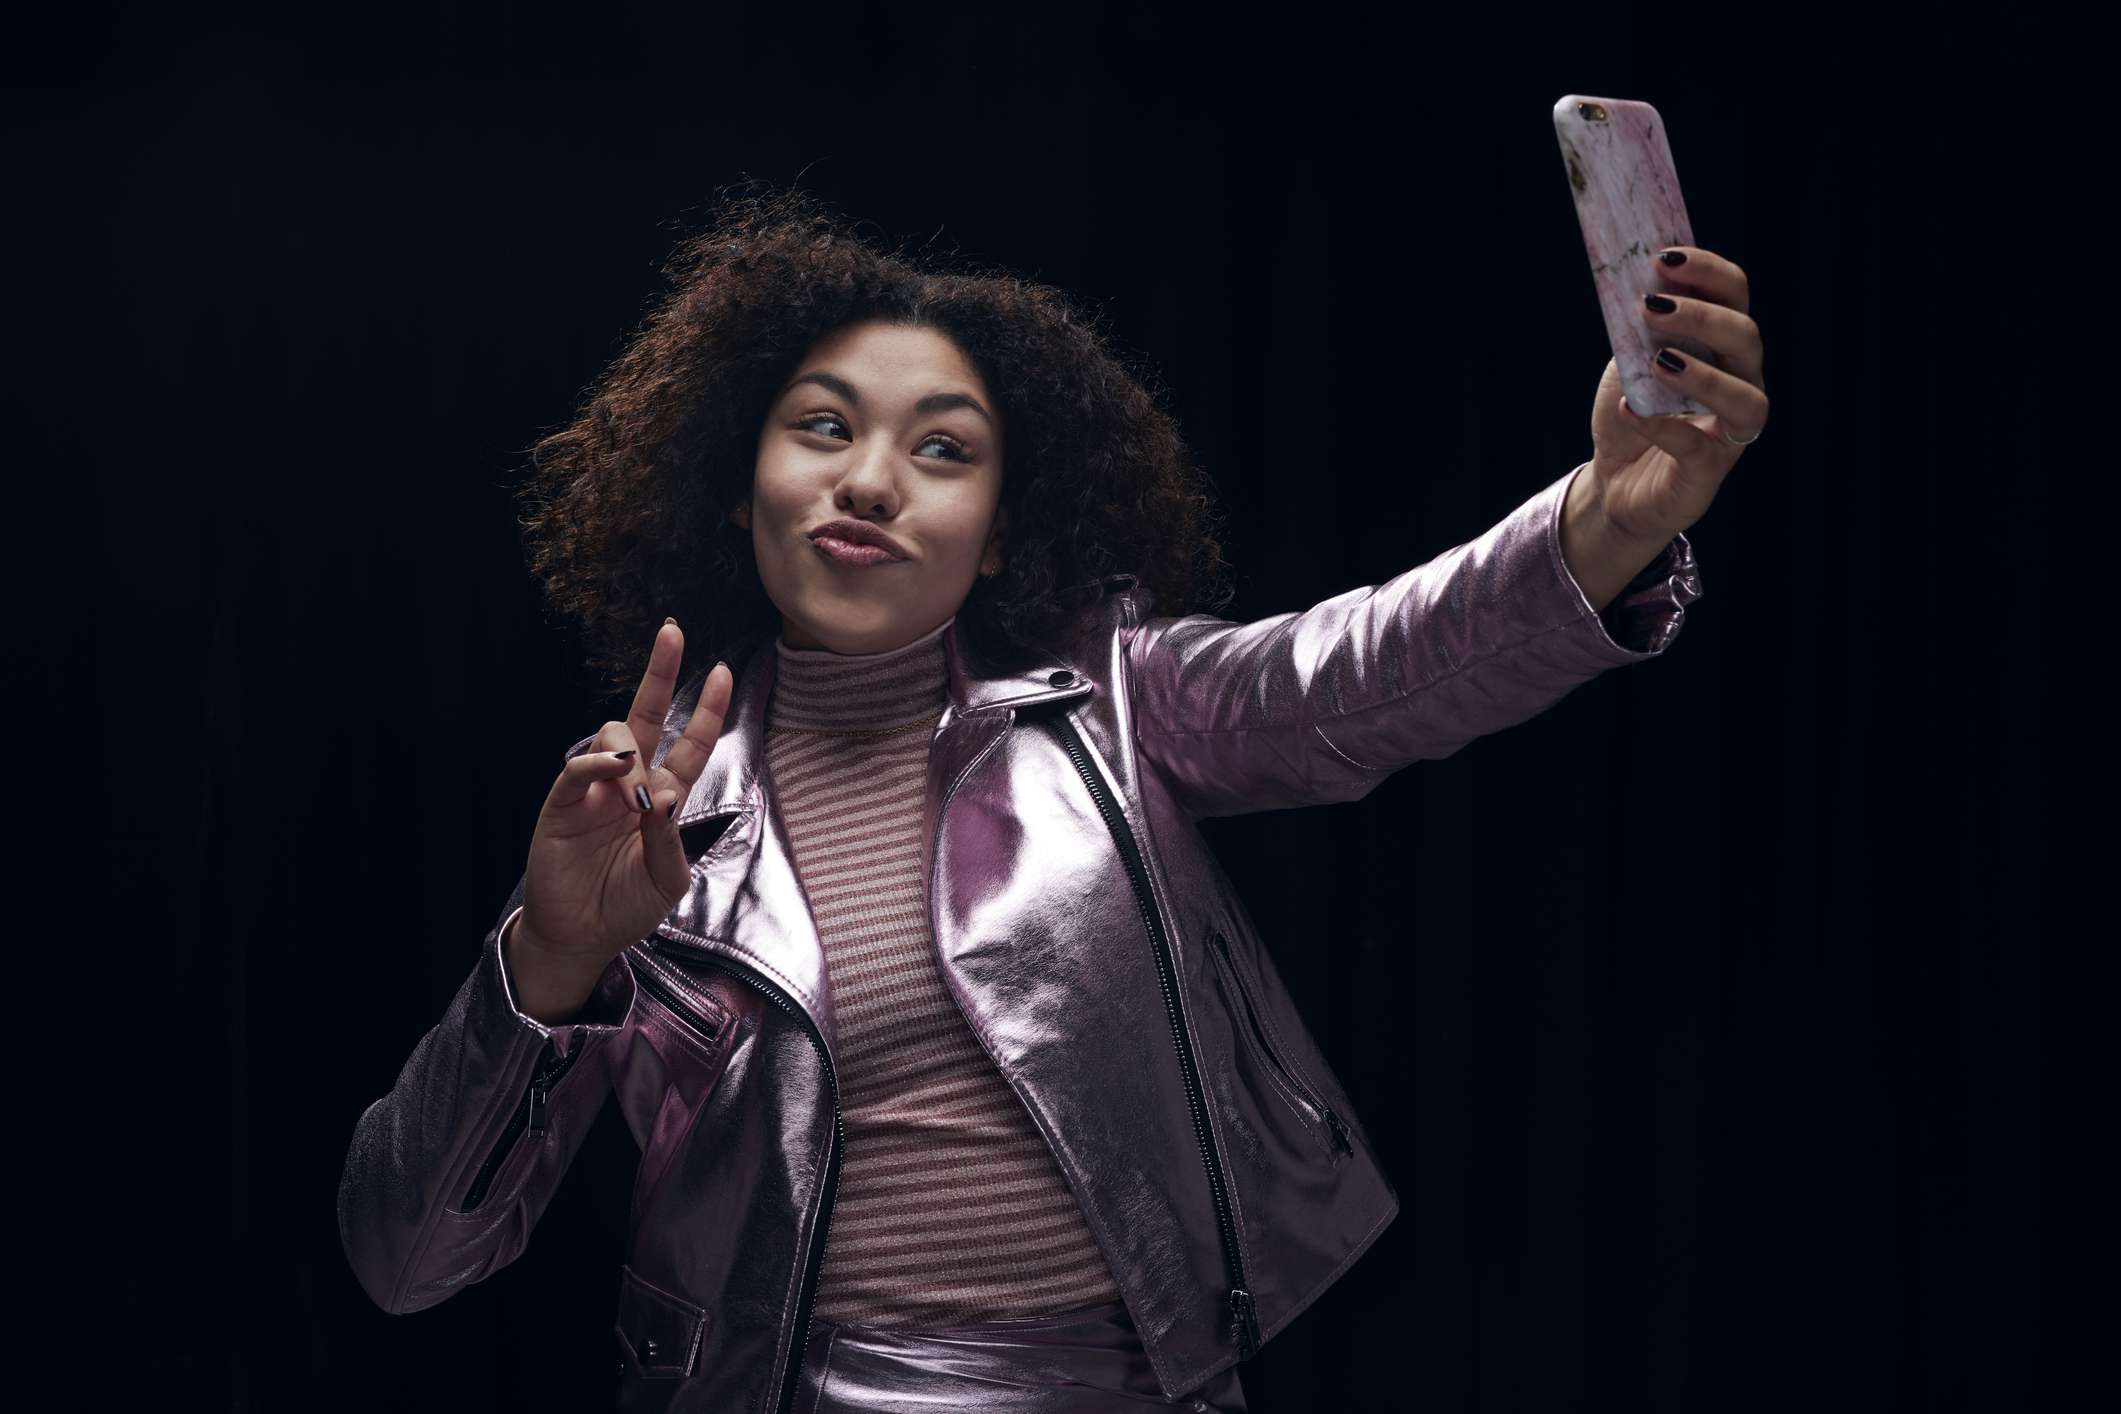 Woman doing the peace sign taking a selfie.